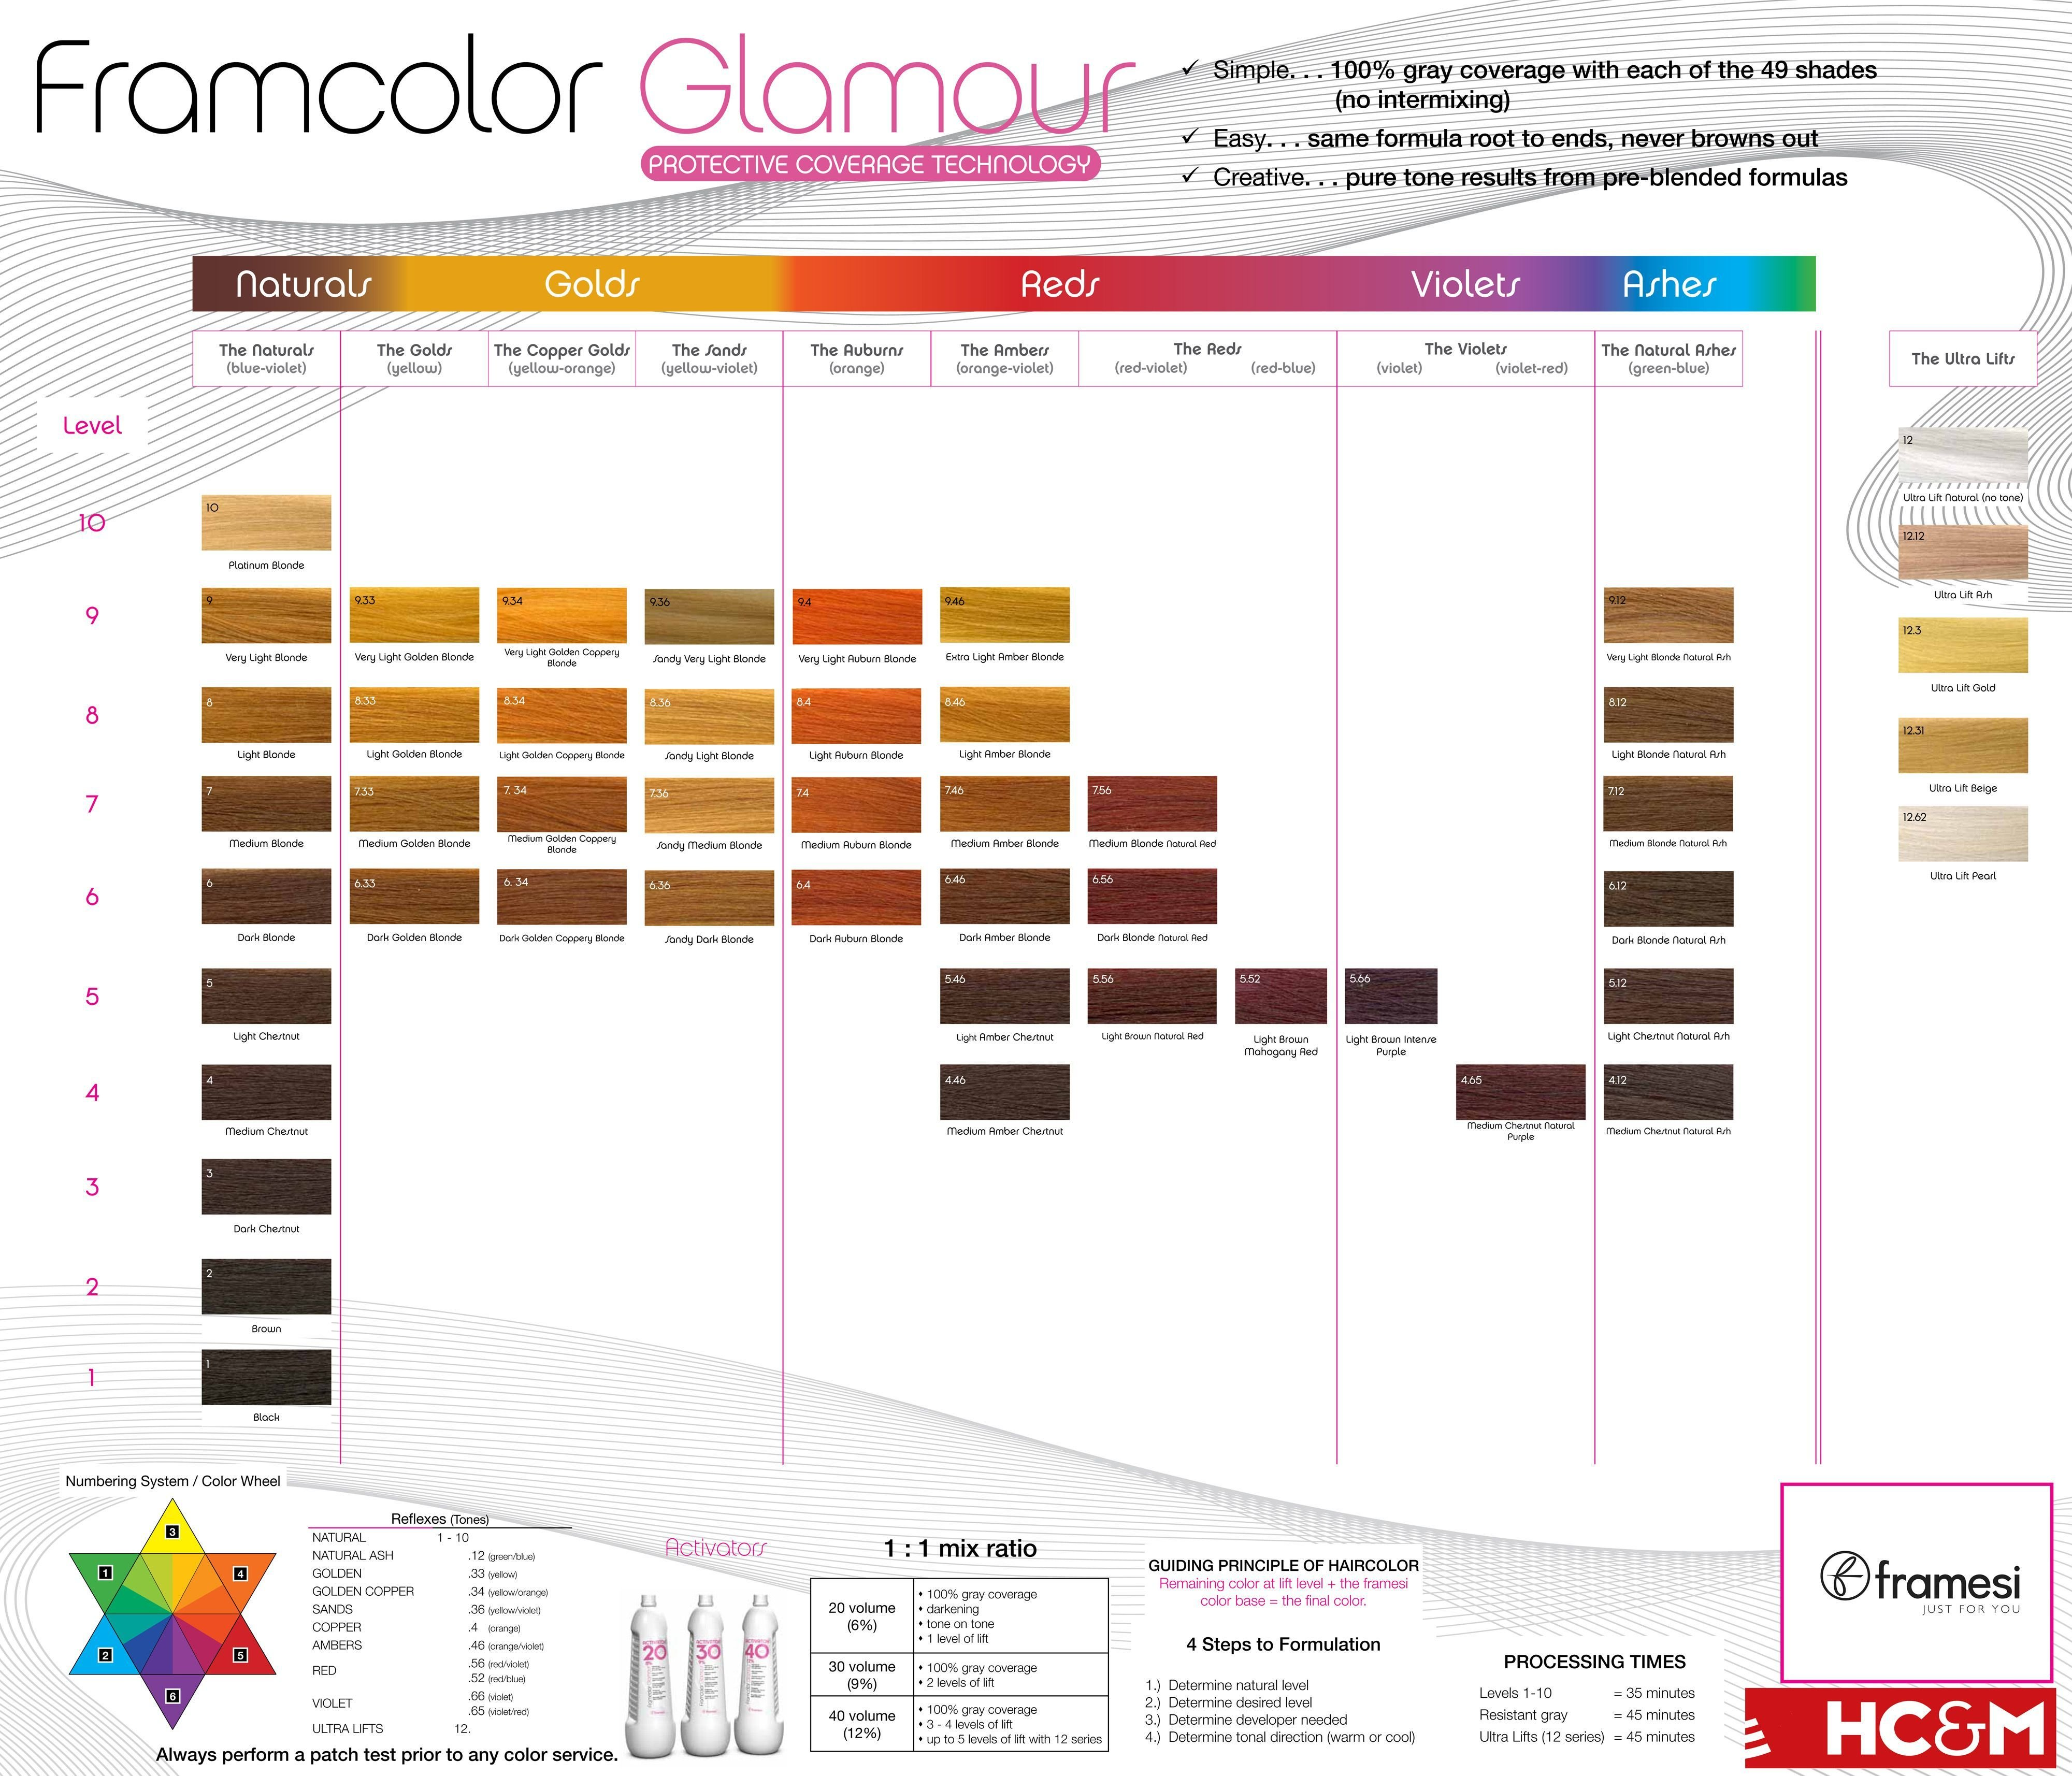 The Best Framesi Framcolor Glamour Shades Chart Color Charts Pictures